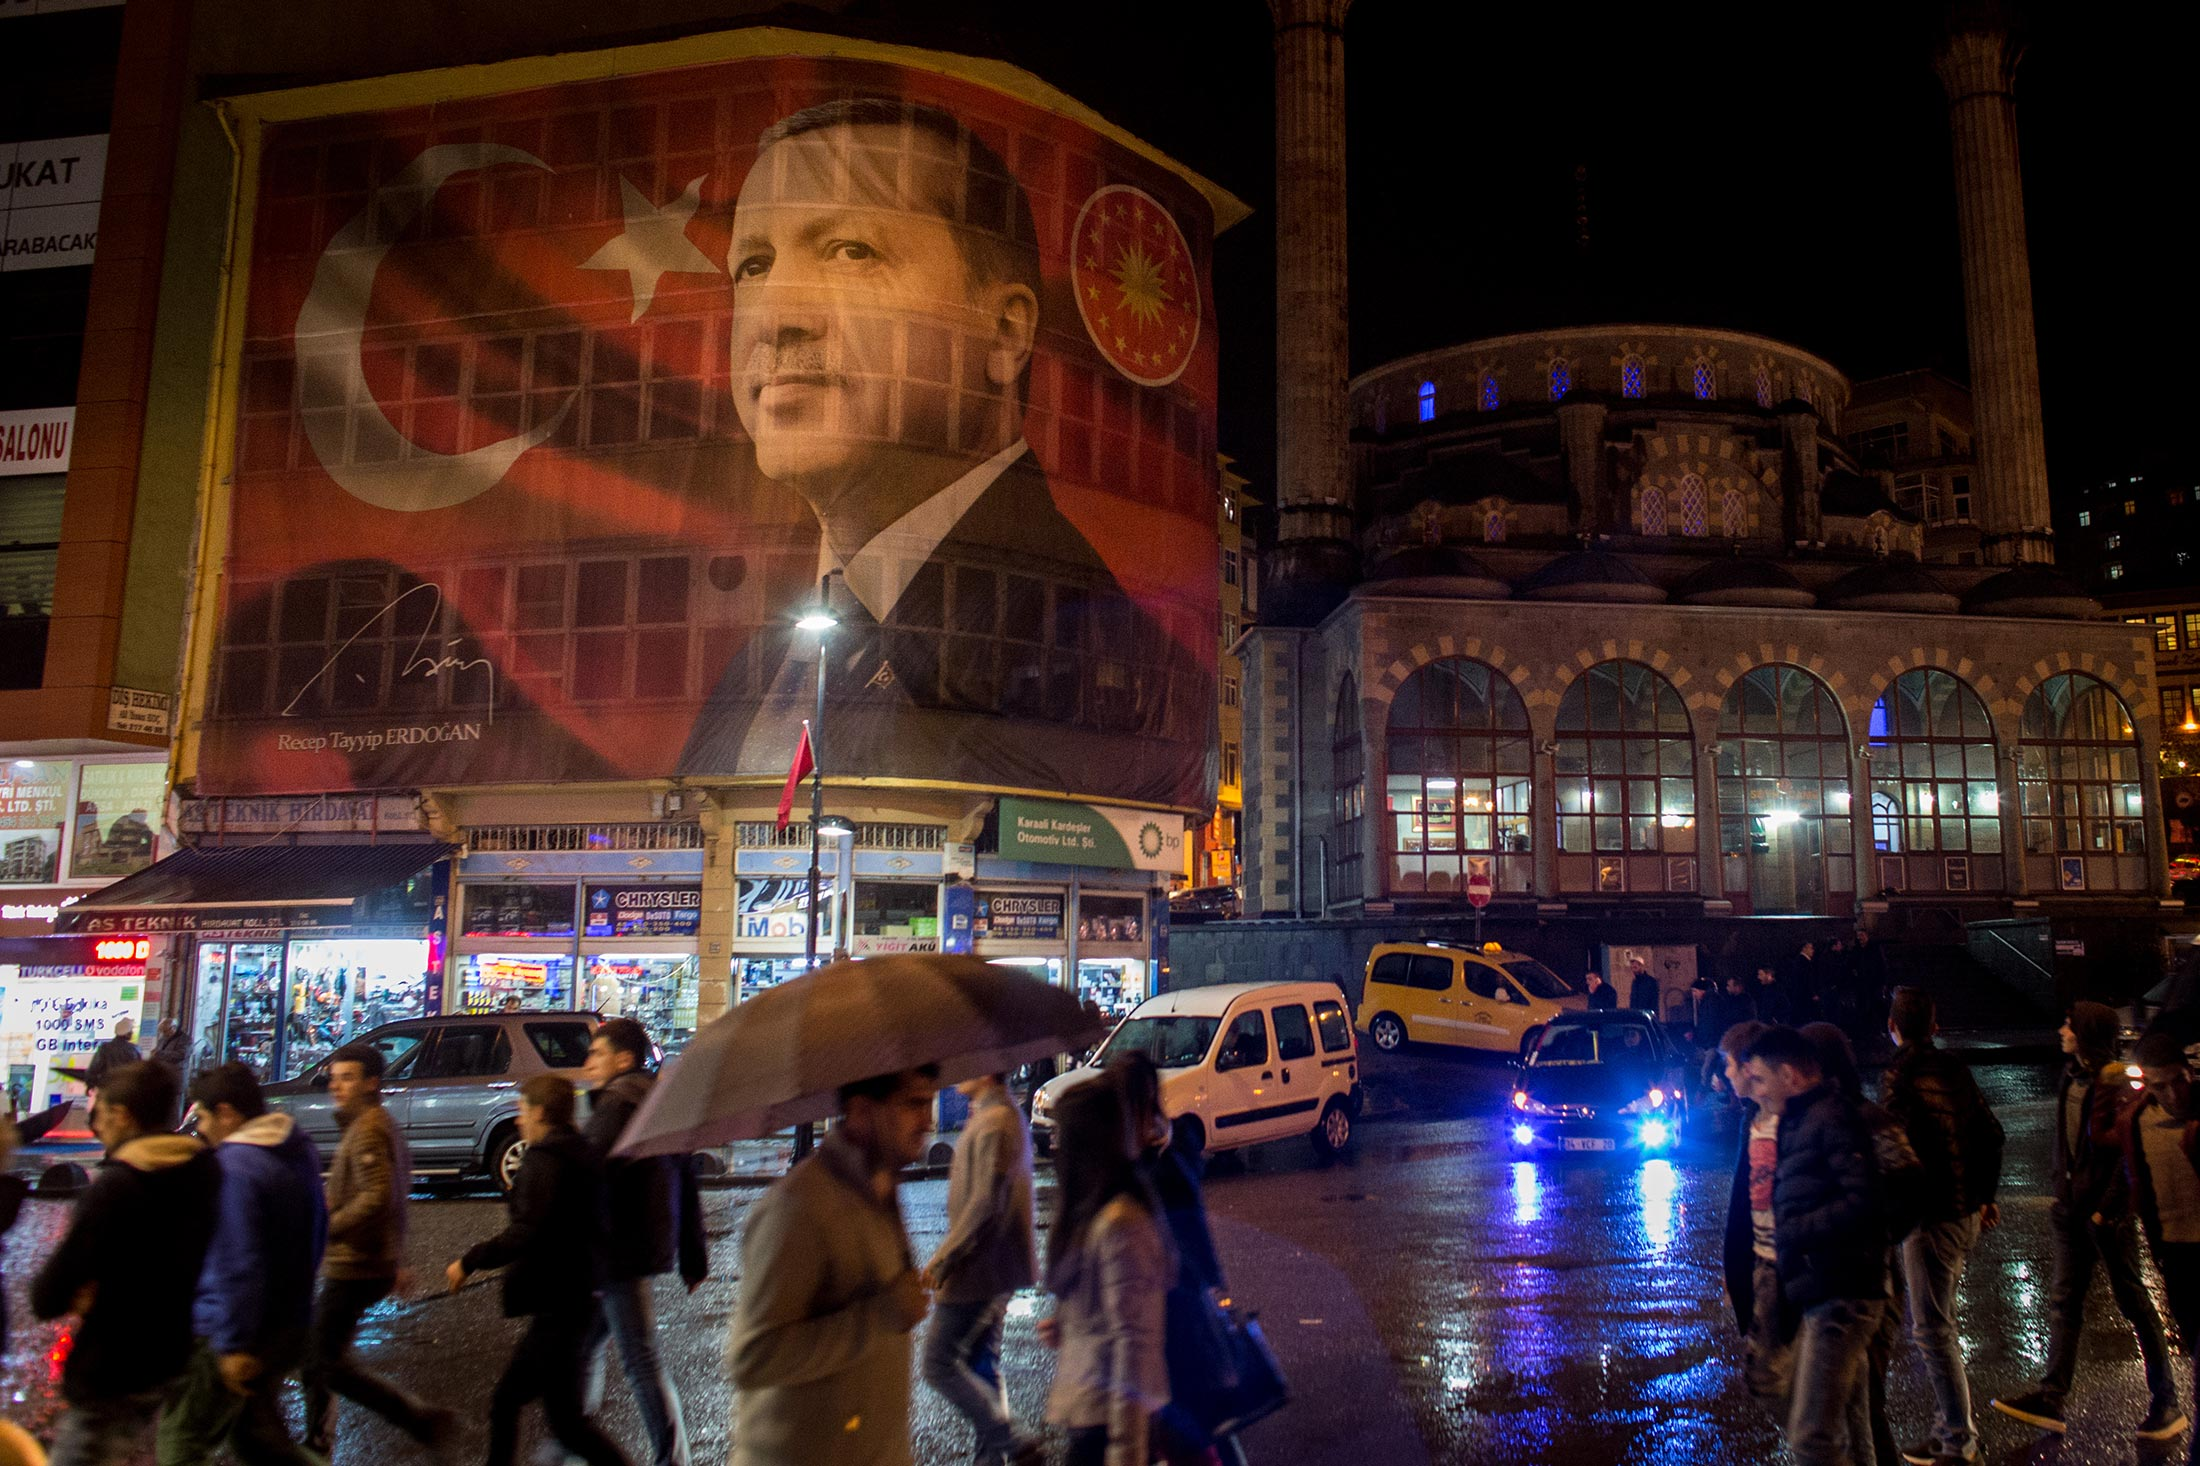 How Turkey's Erdogan Might get still more power?